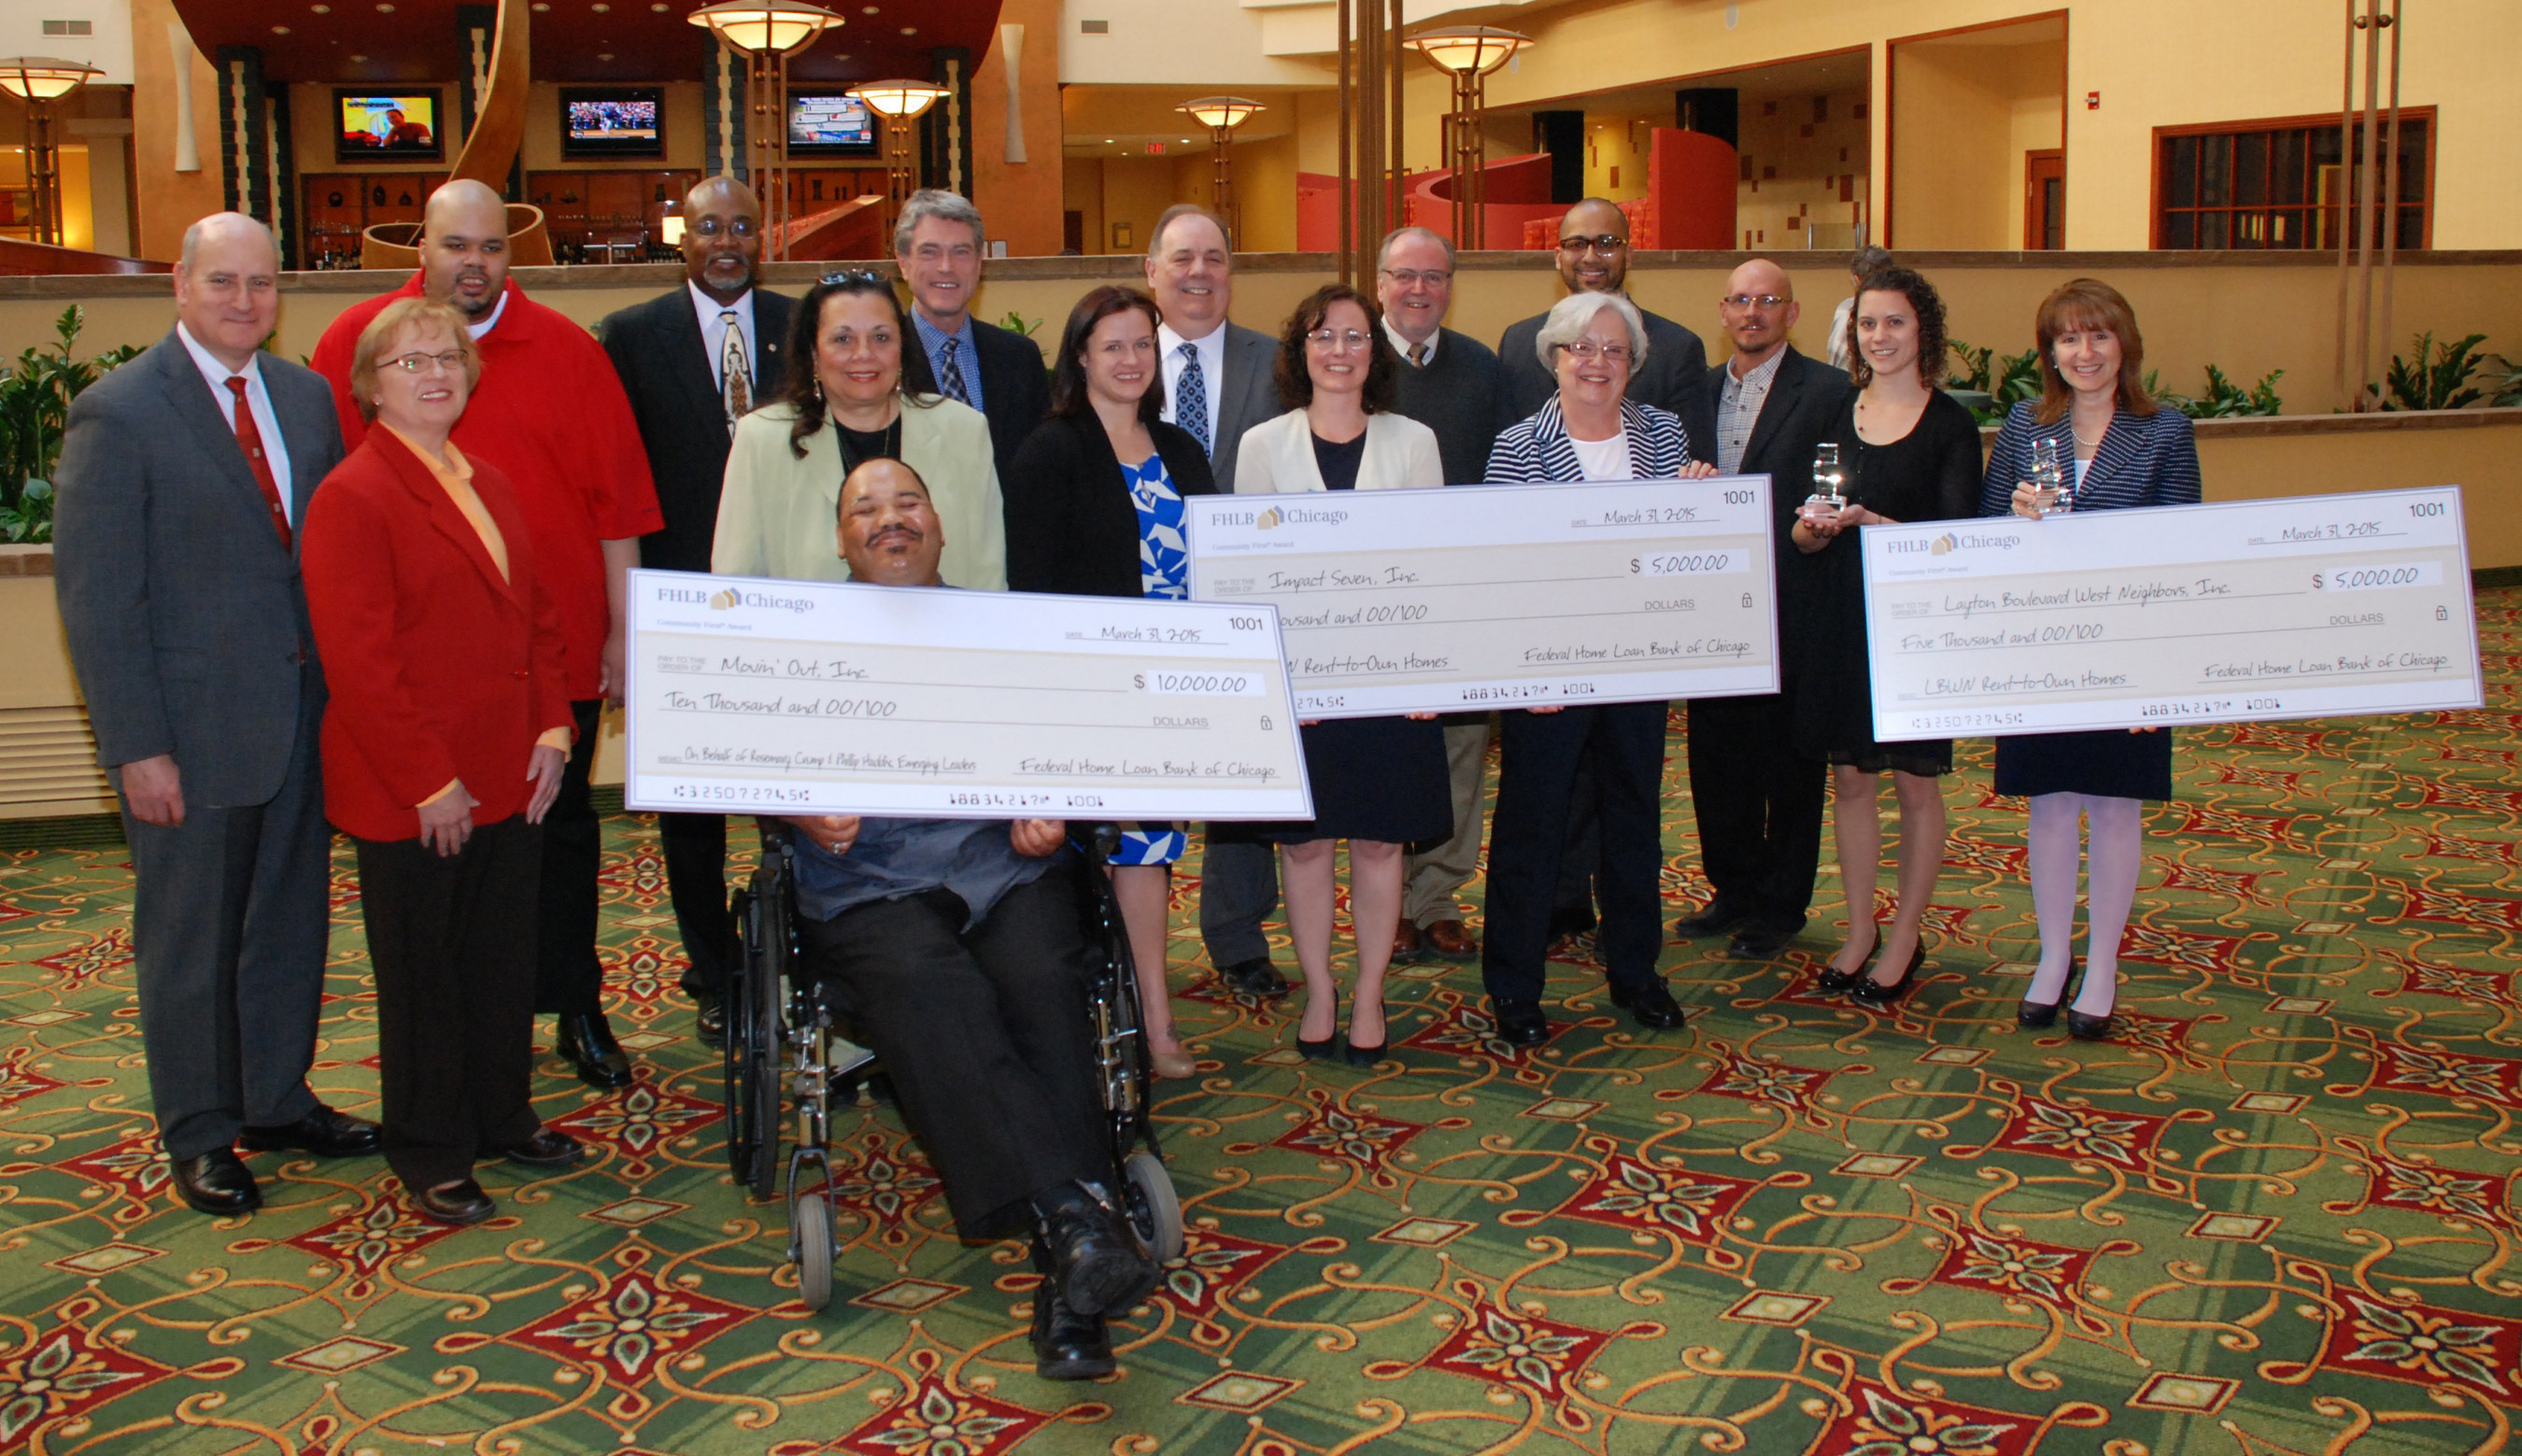 Federal Home Loan Bank of Chicago Announces Community First' Award Winners in Wisconsin